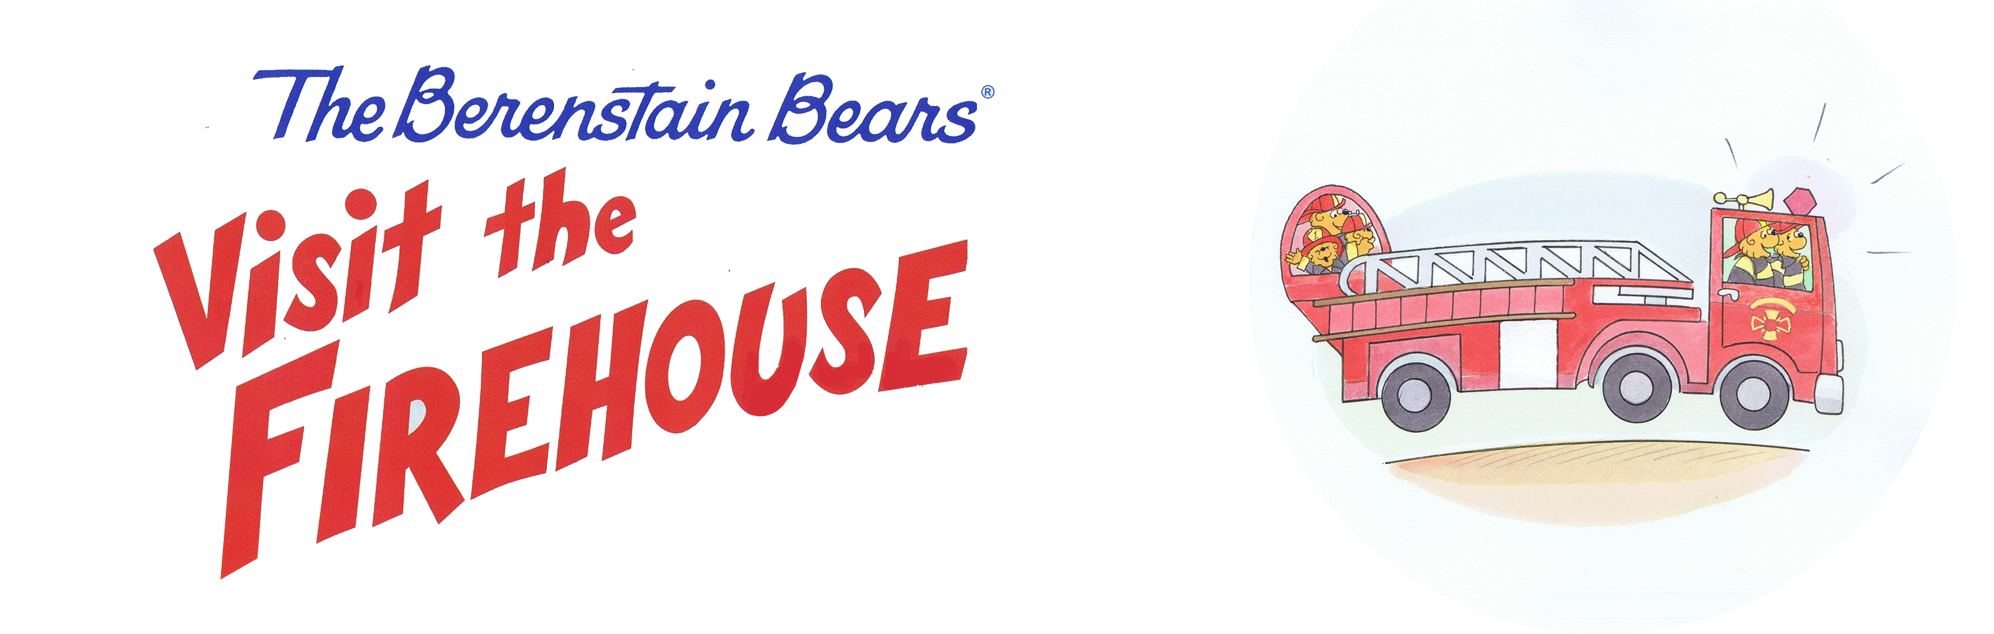 Visit the Firehouse logo